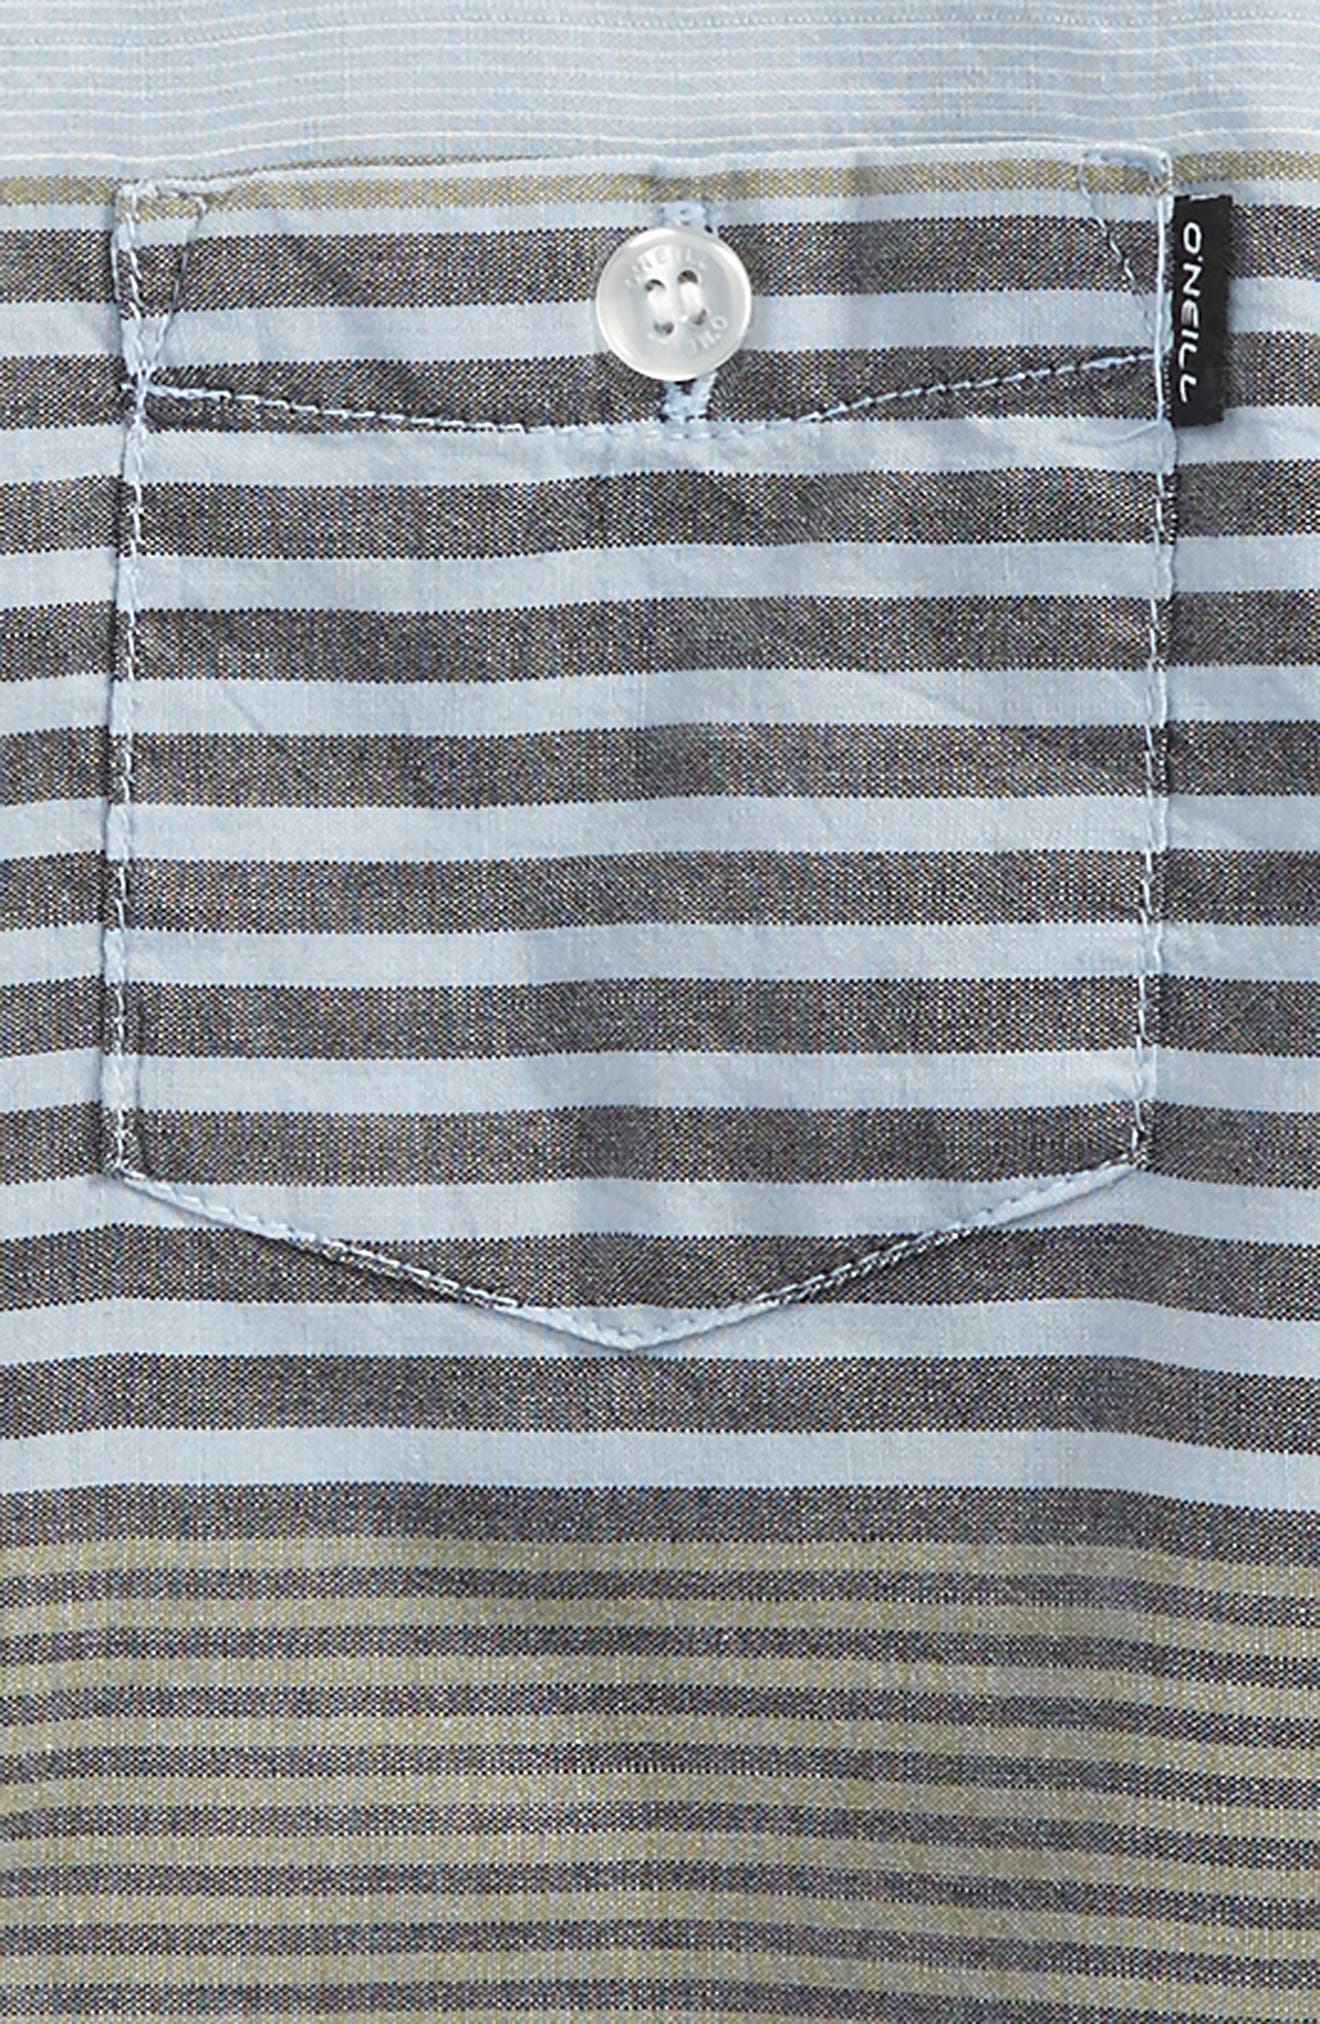 Altair Woven Shirt,                             Alternate thumbnail 2, color,                             450